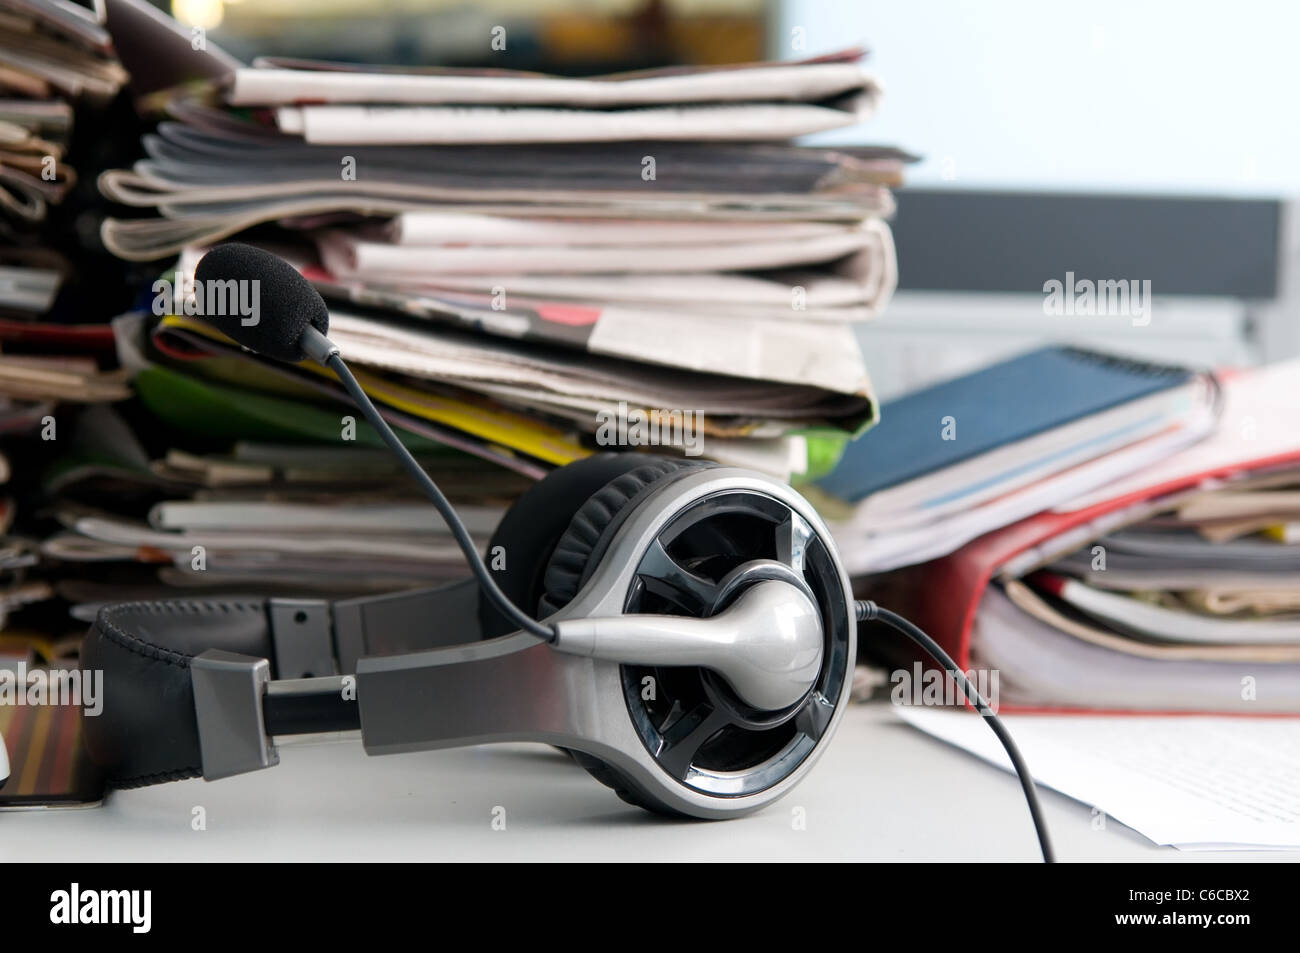 Headphones with a microphone and a mess on the table - Stock Image